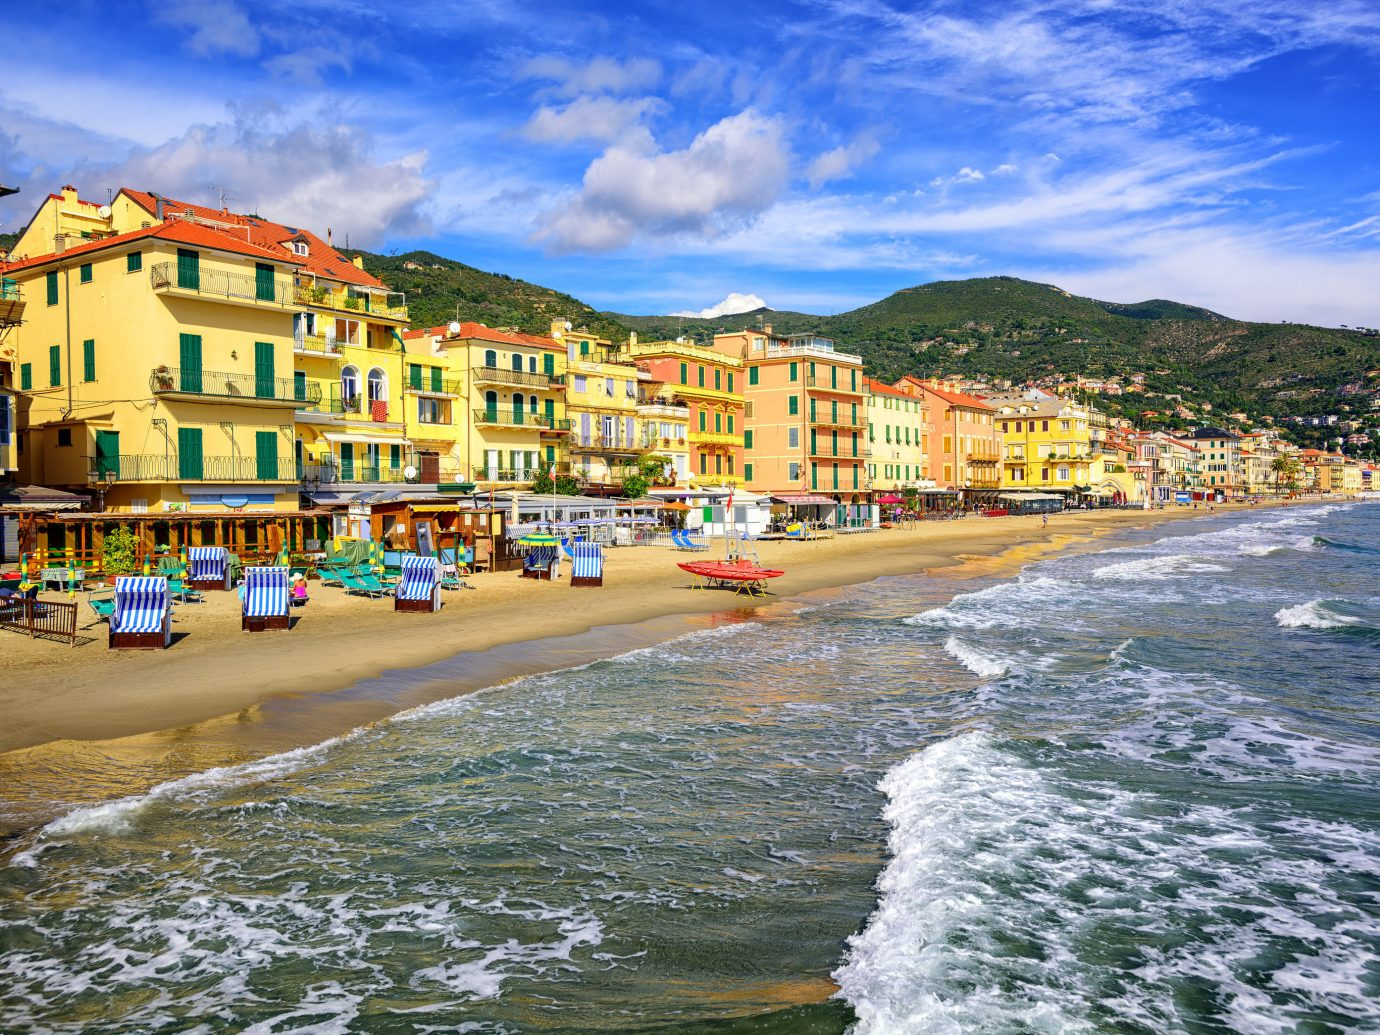 Italy Trip Ideas sky Sea Coast body of water water Town shore Beach coastal and oceanic landforms City Ocean tourism wave bay terrain cloud vacation evening travel house landscape sand mountain horizon